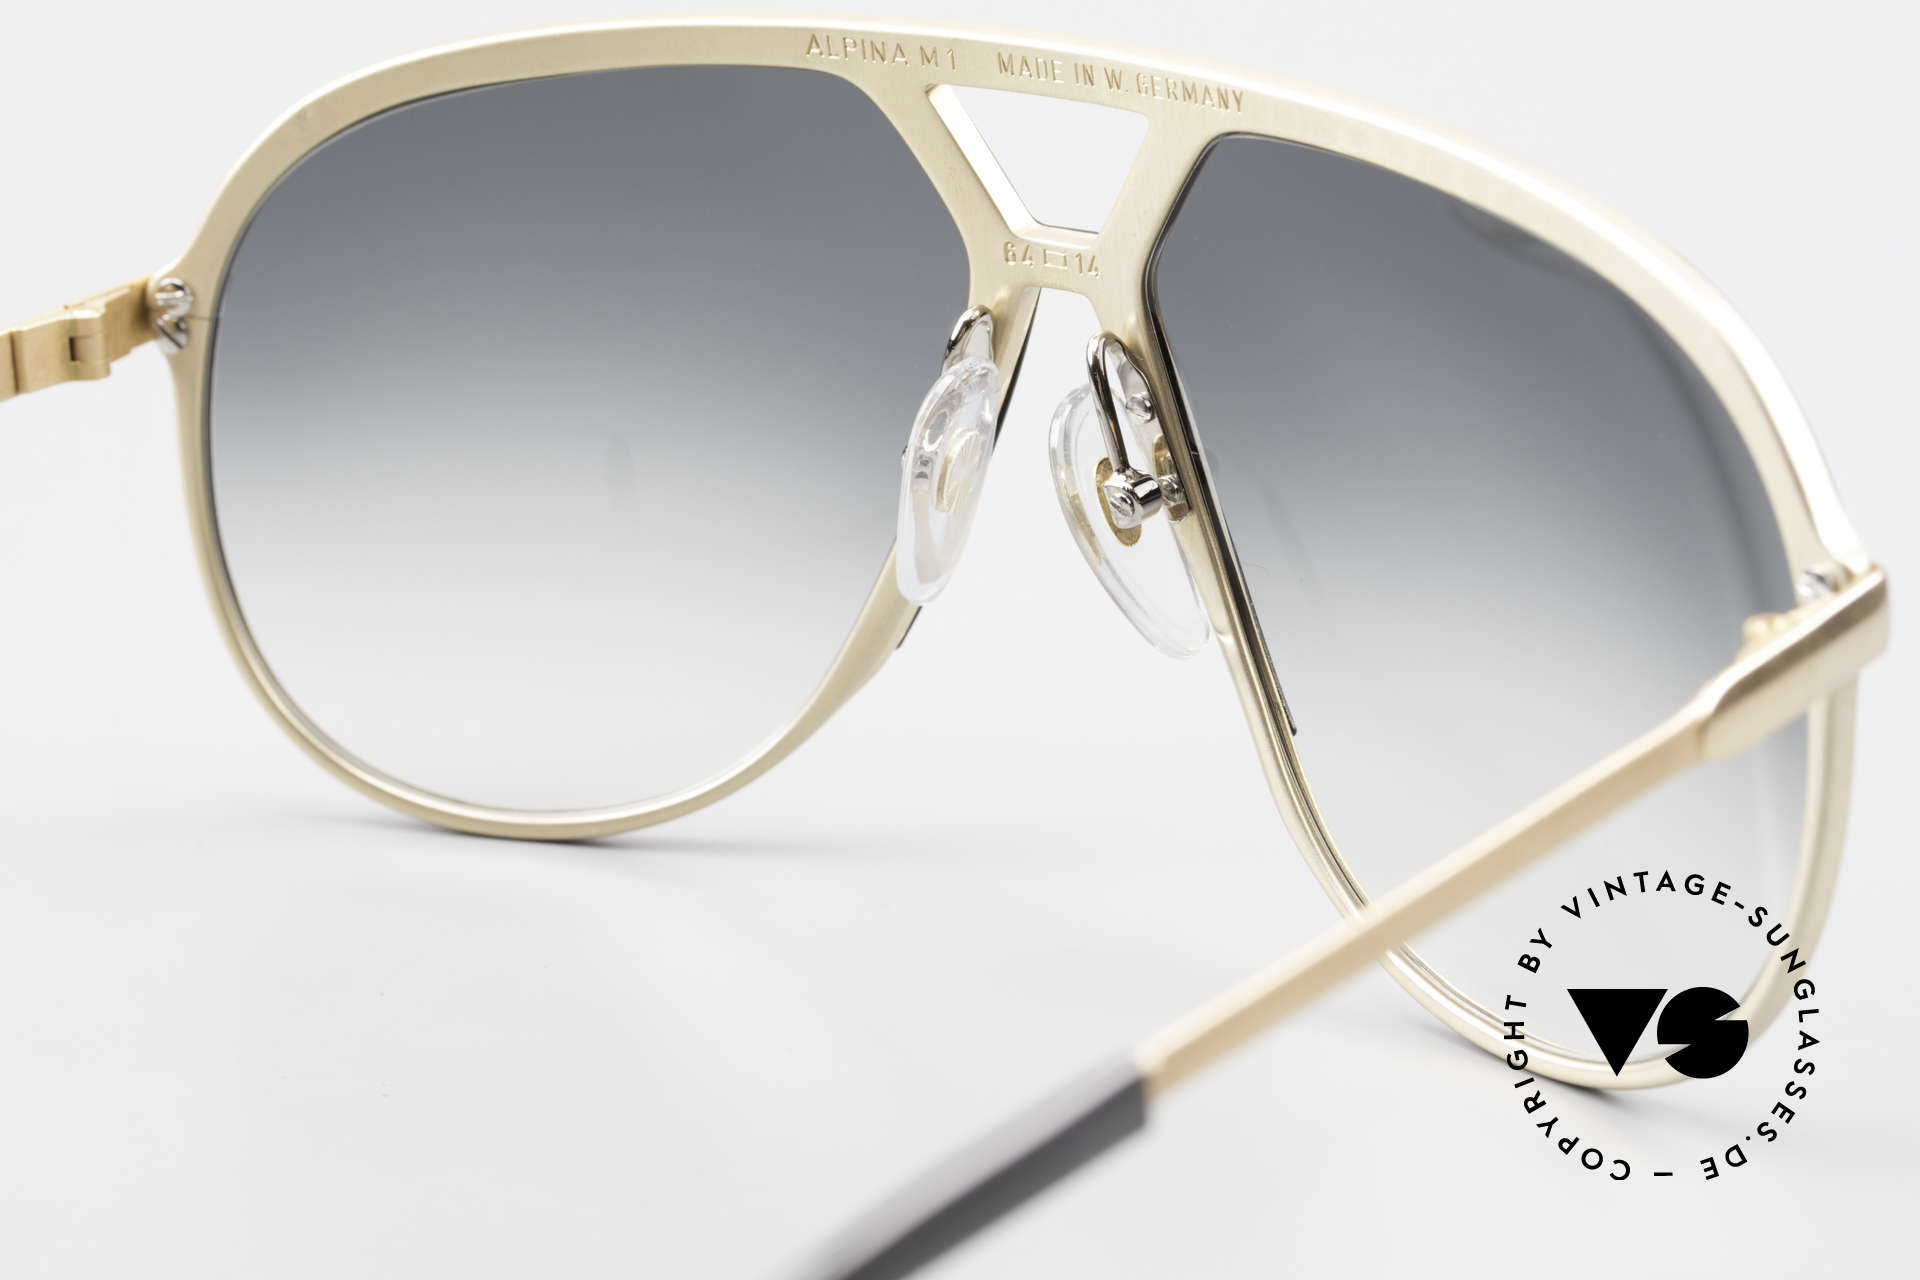 Alpina M1 Old 80's West Germany Shades, NO RETRO SHADES, but the old legend from 1986, Made for Men